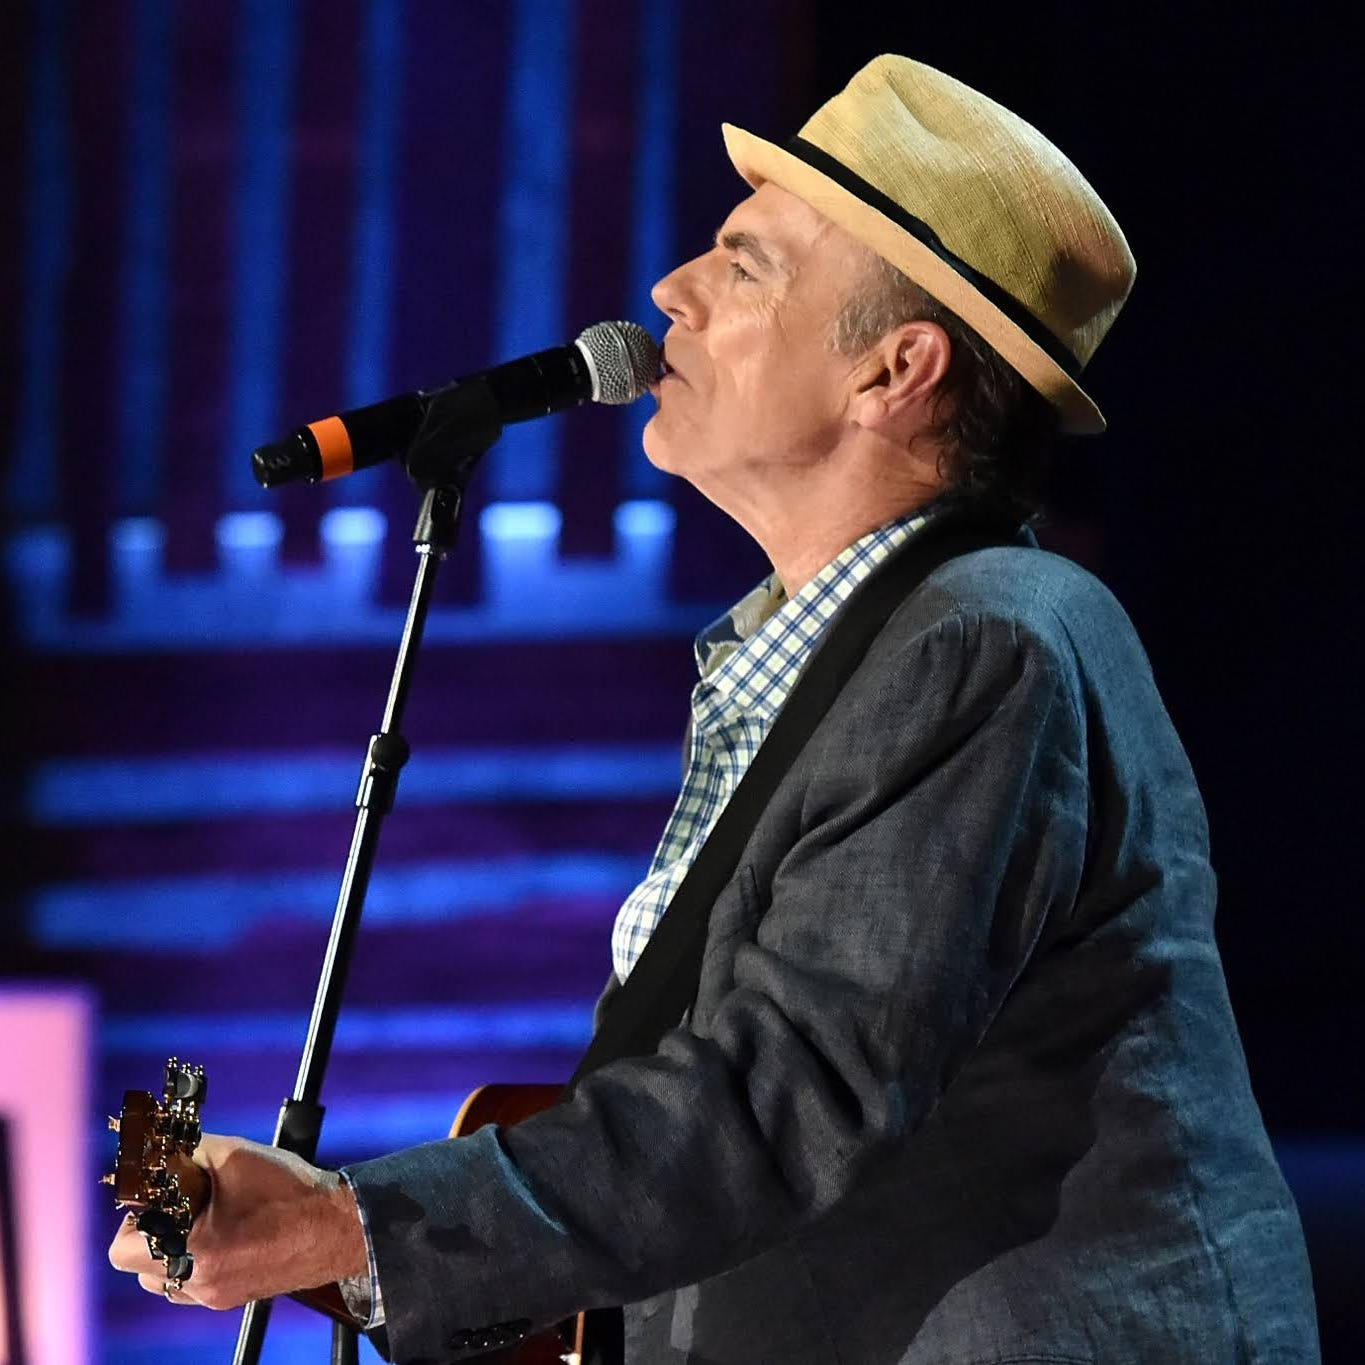 4 ways John Hiatt brought songwriting genius home to Indiana